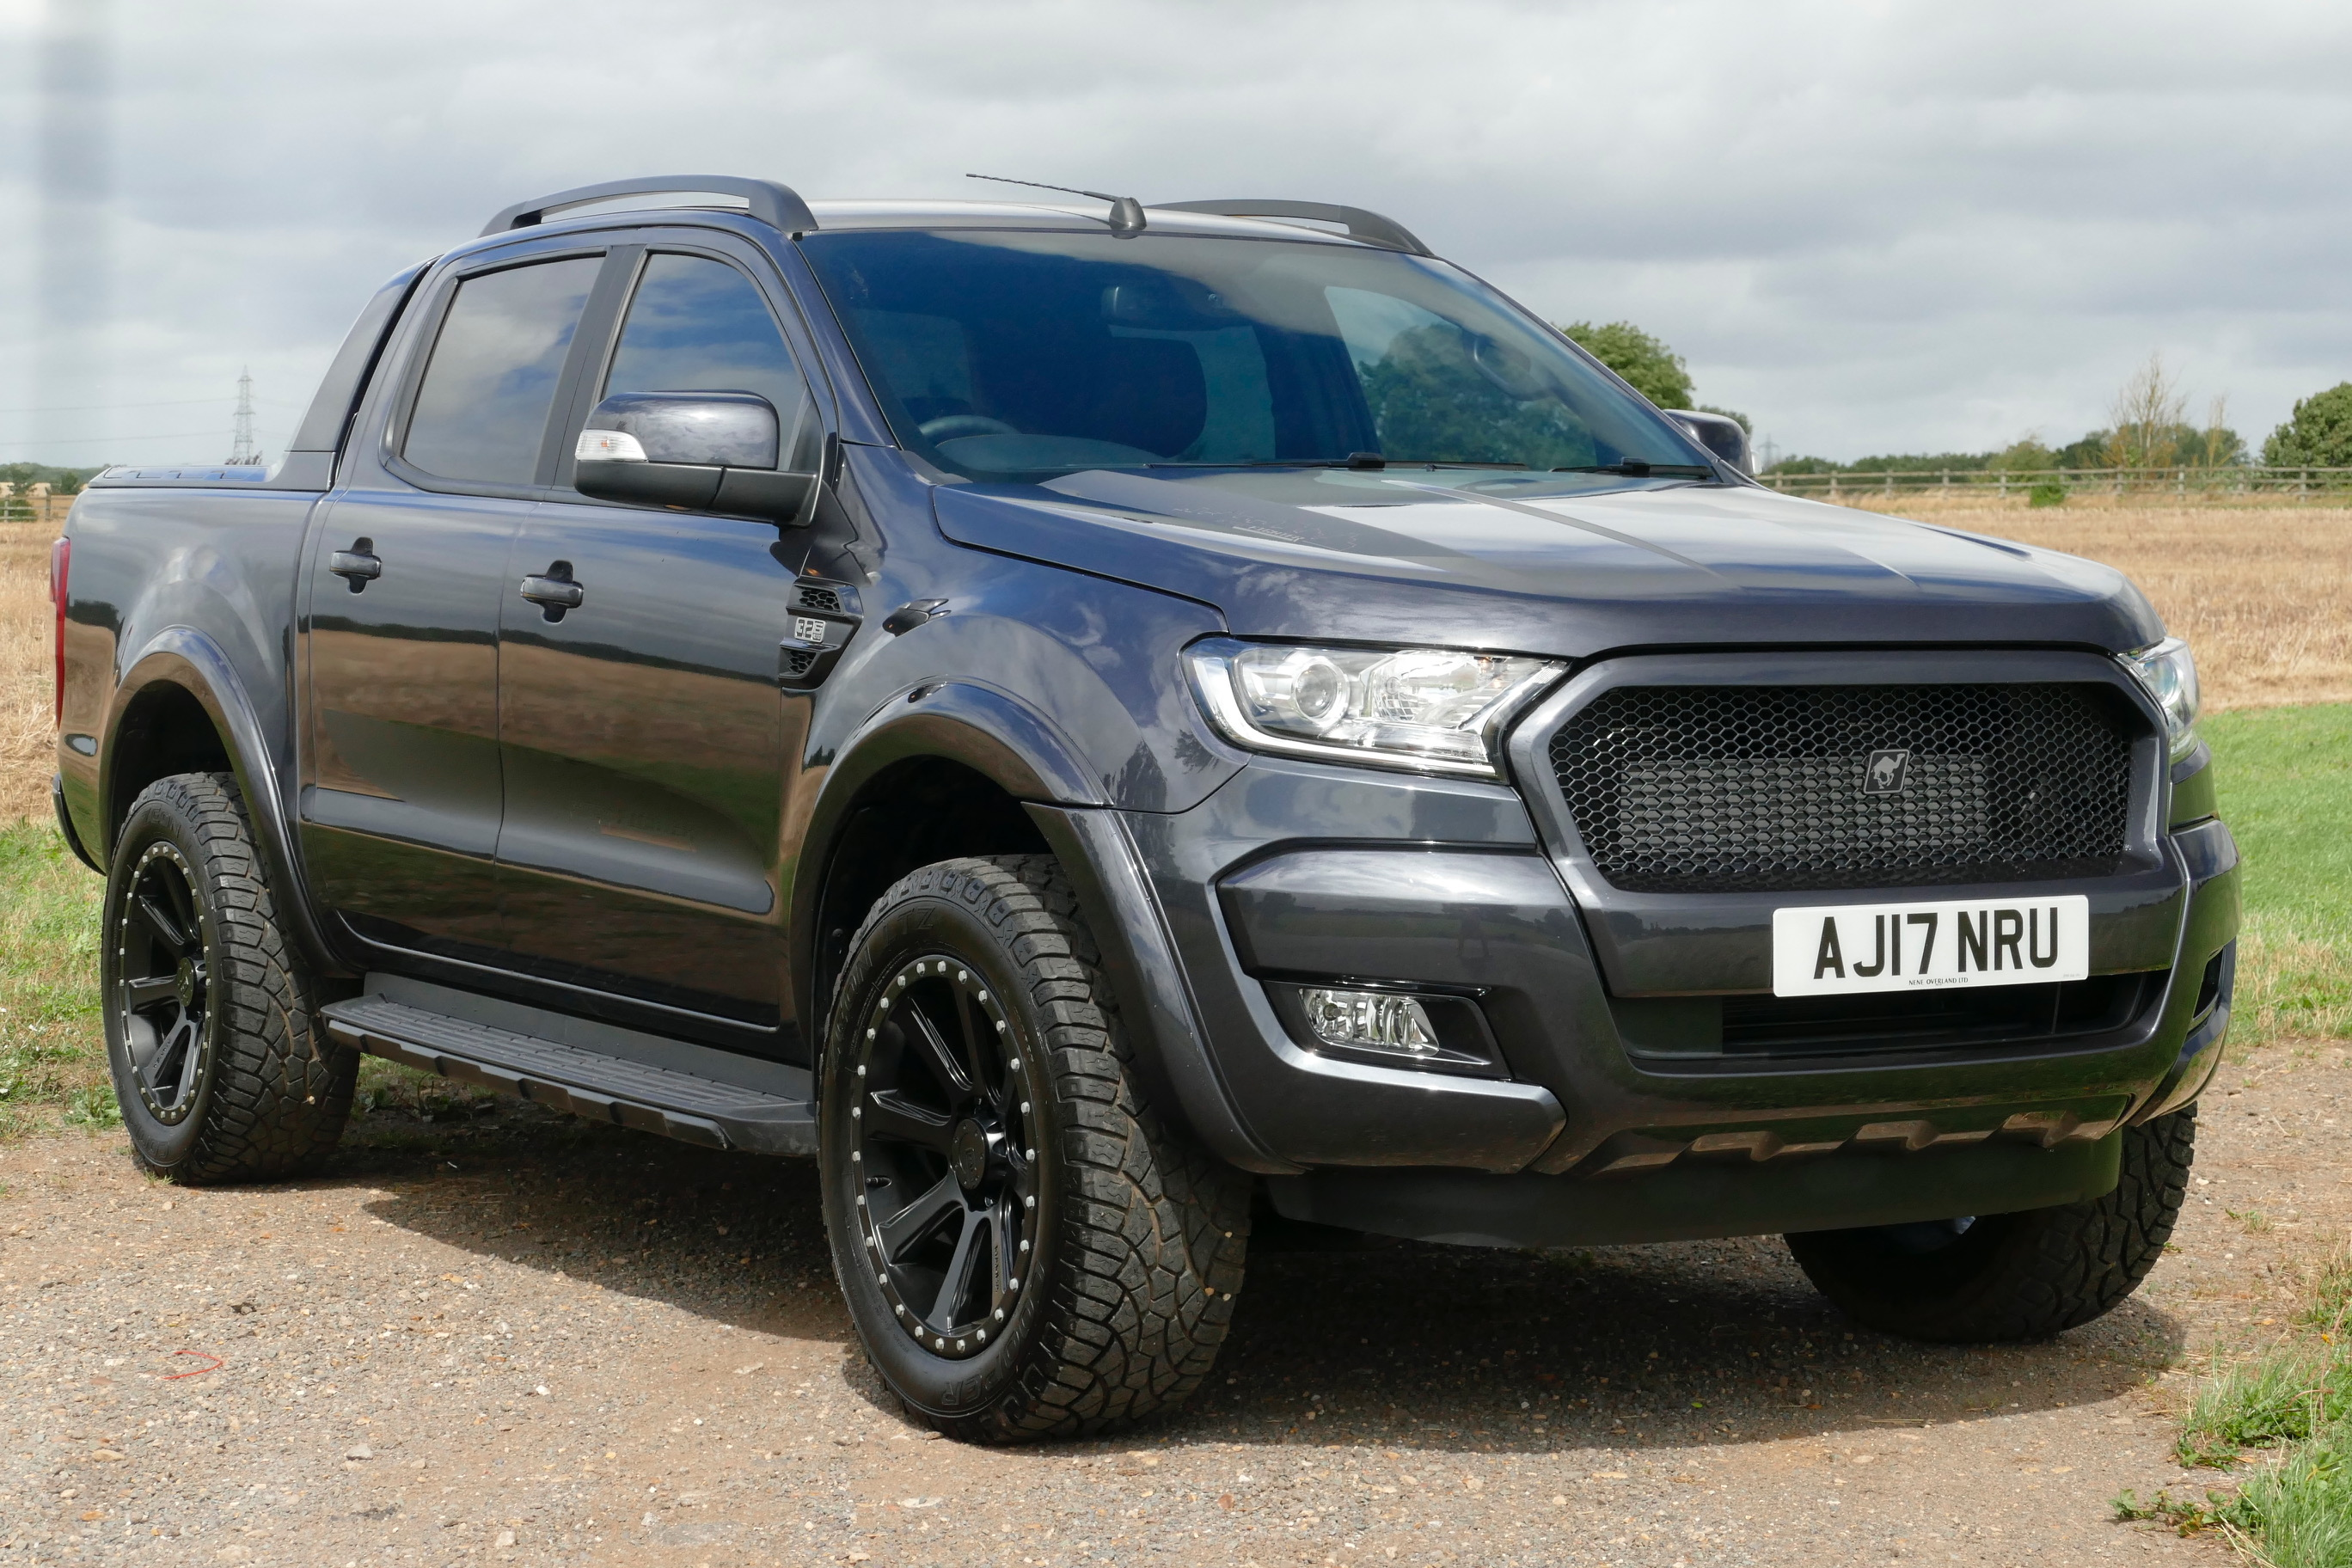 Ford Ranger Wildtrak 3 2 Tdci Automatic Street Fighter